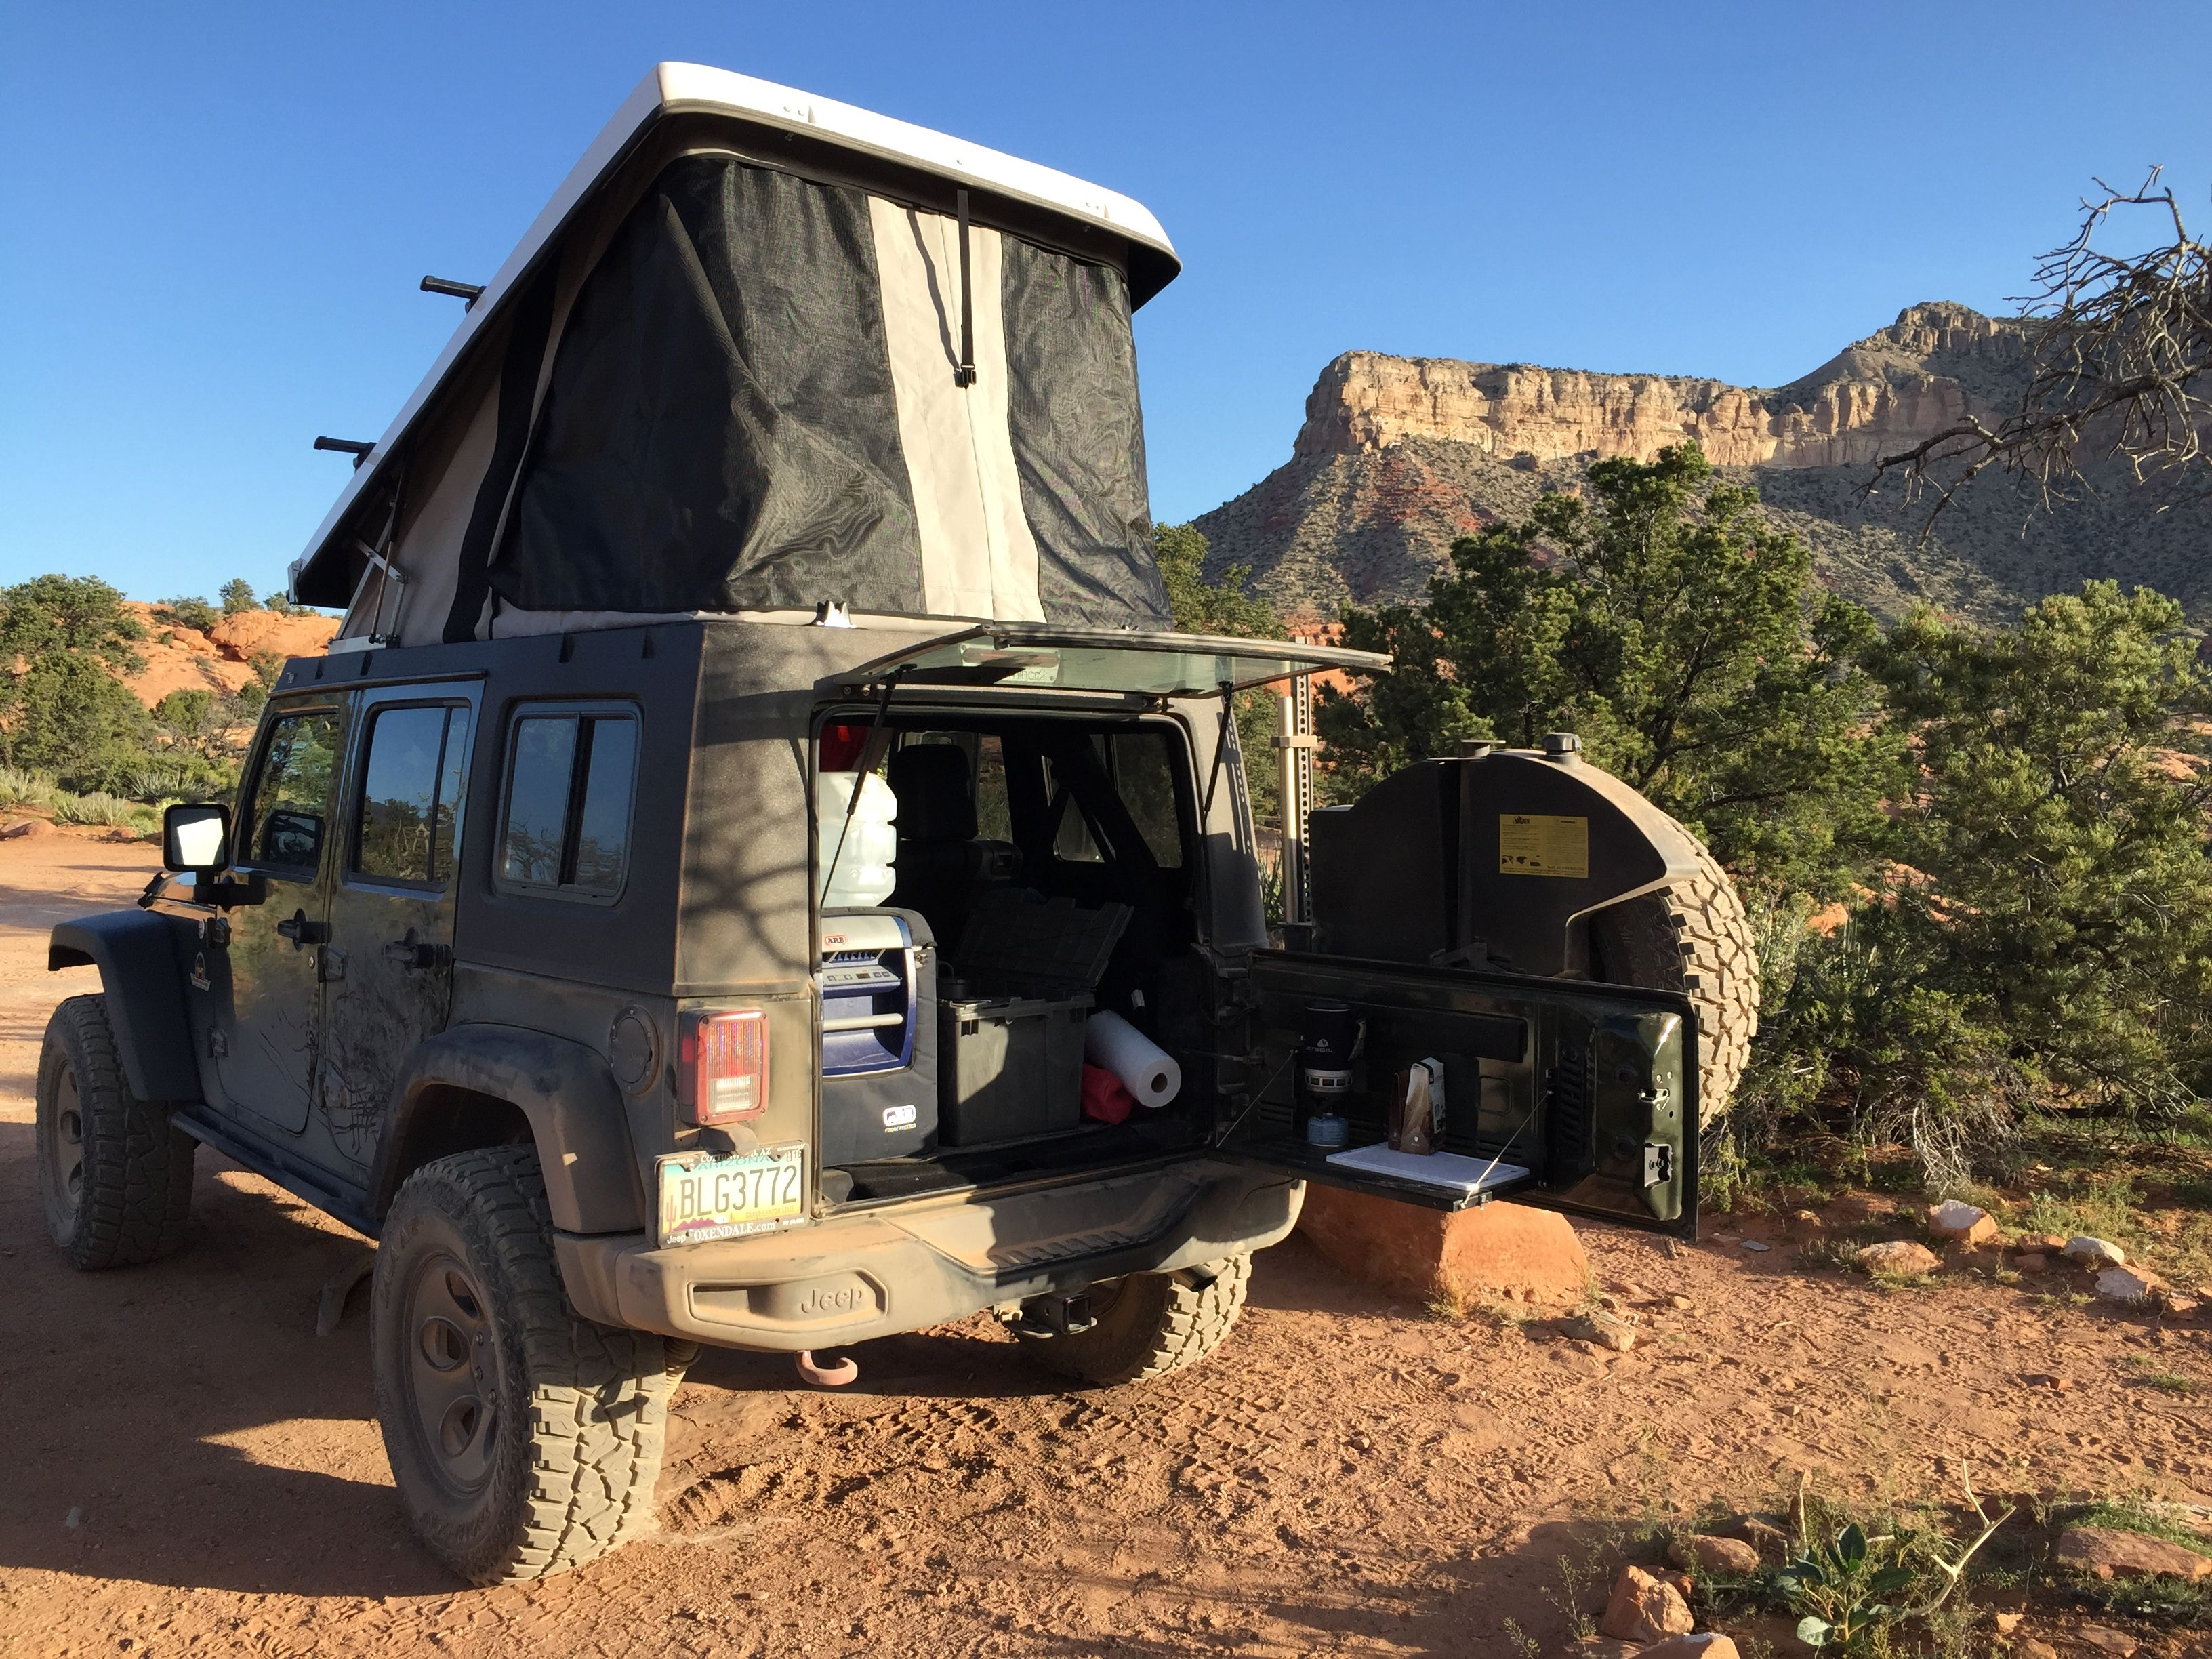 Camping With The Ursa Minor Rooftop Tent On A Jeep Wrangler At Toroweap Az Arb Fridge Teraflex Tailgate Table Jeep Camping Roof Top Tent Jeep Tent